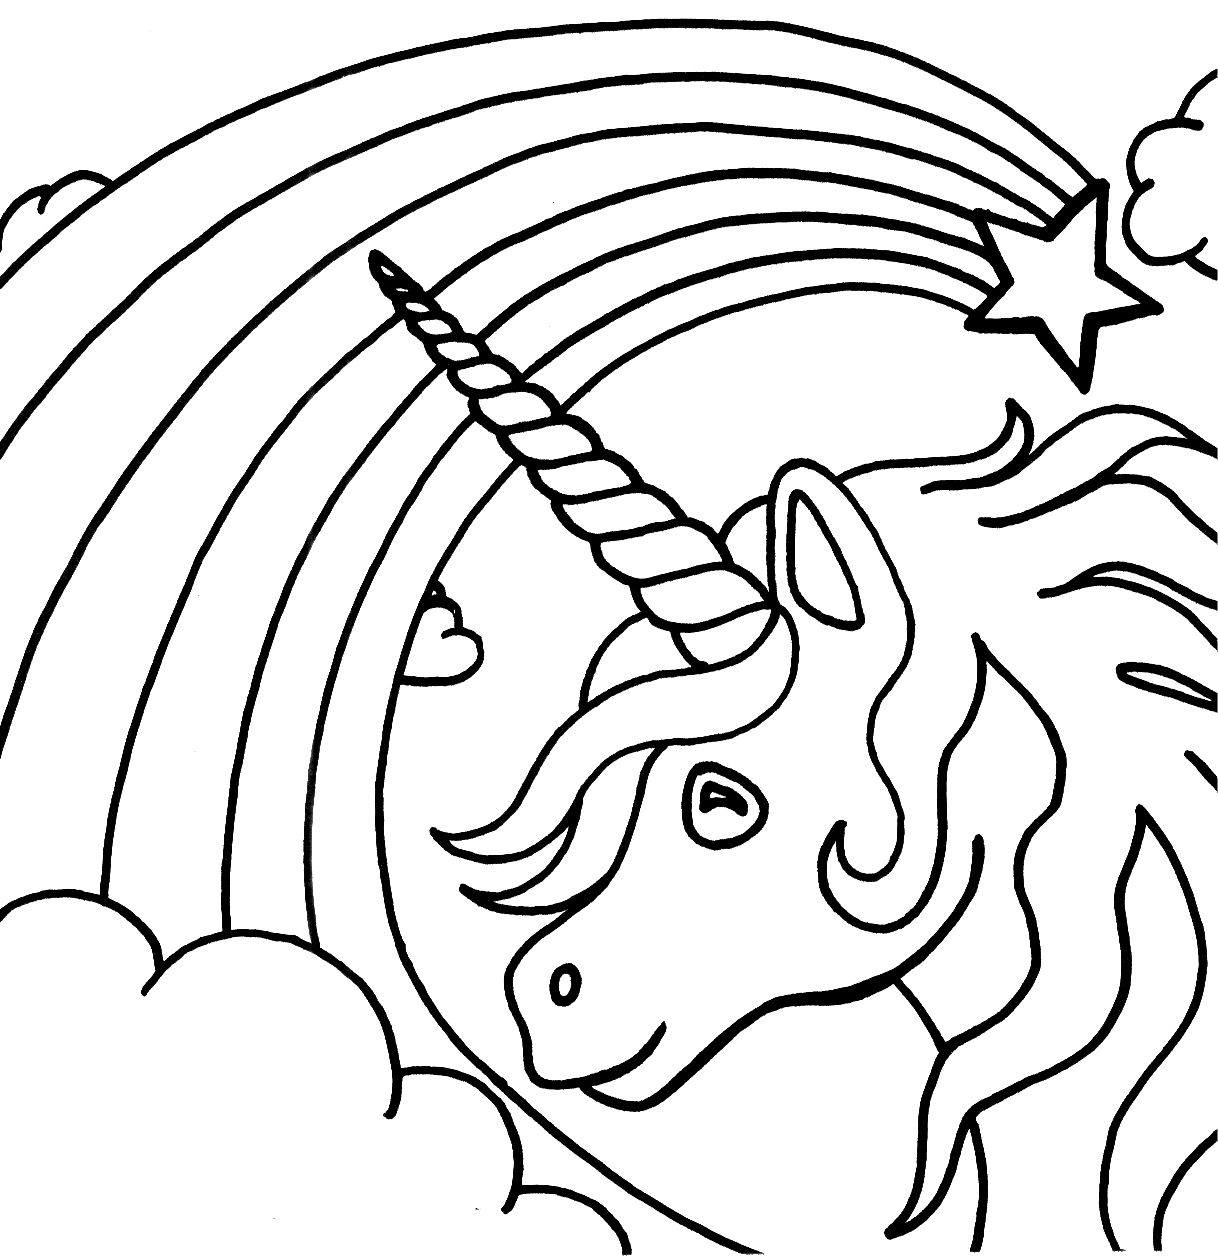 Coloring Sheets Free Unicorn Coloring Pages Emoji Coloring Pages Cute Coloring Pages